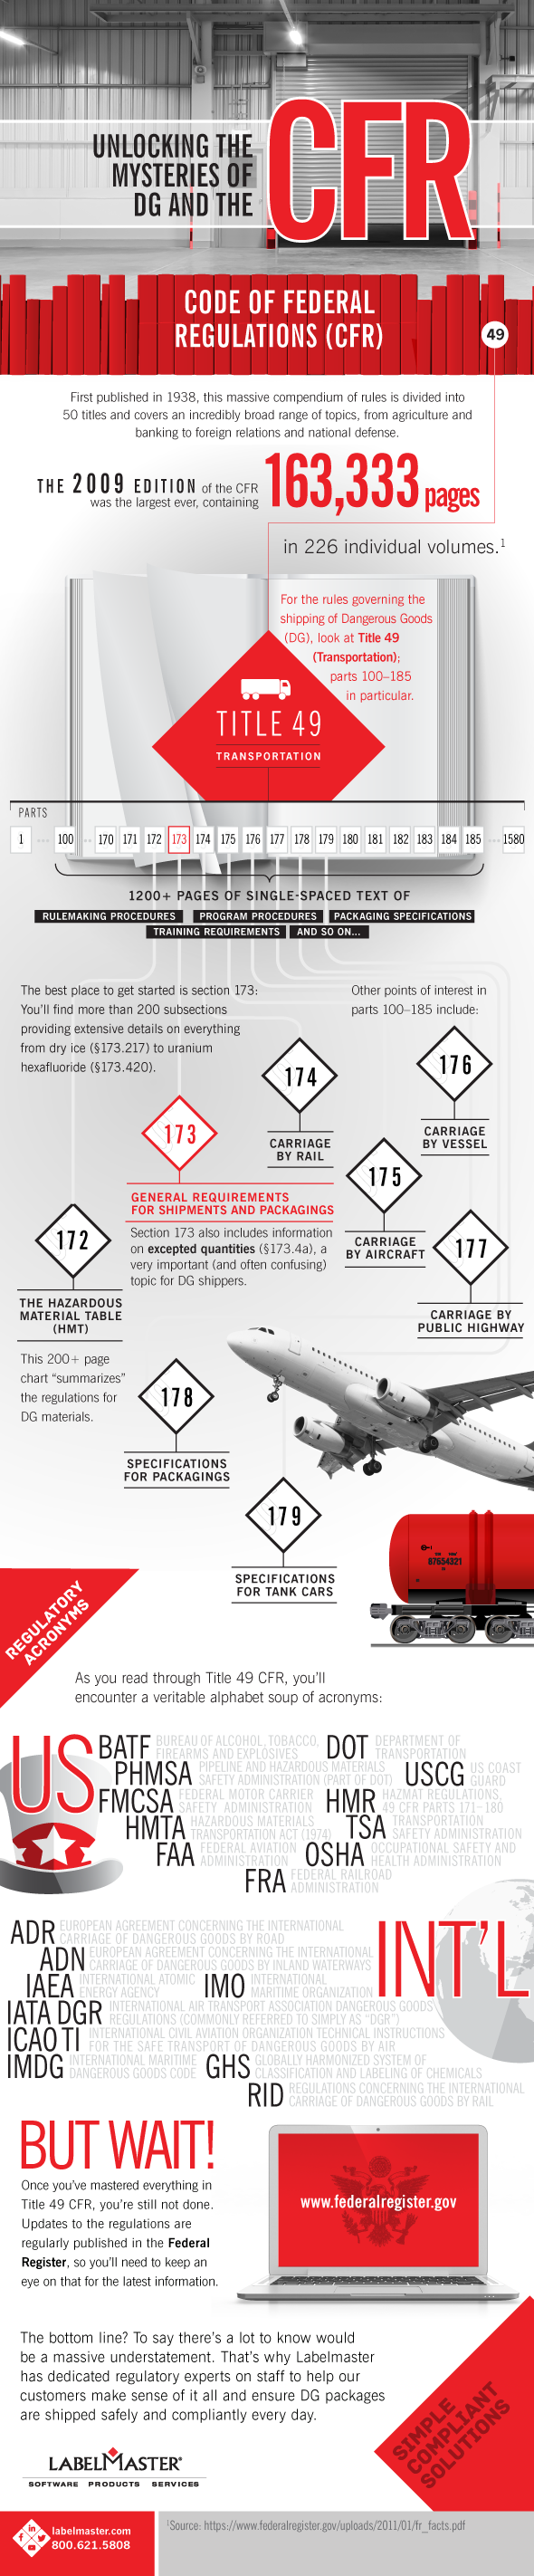 Infographic | Unlocking the Mysteries of DG and the CFR